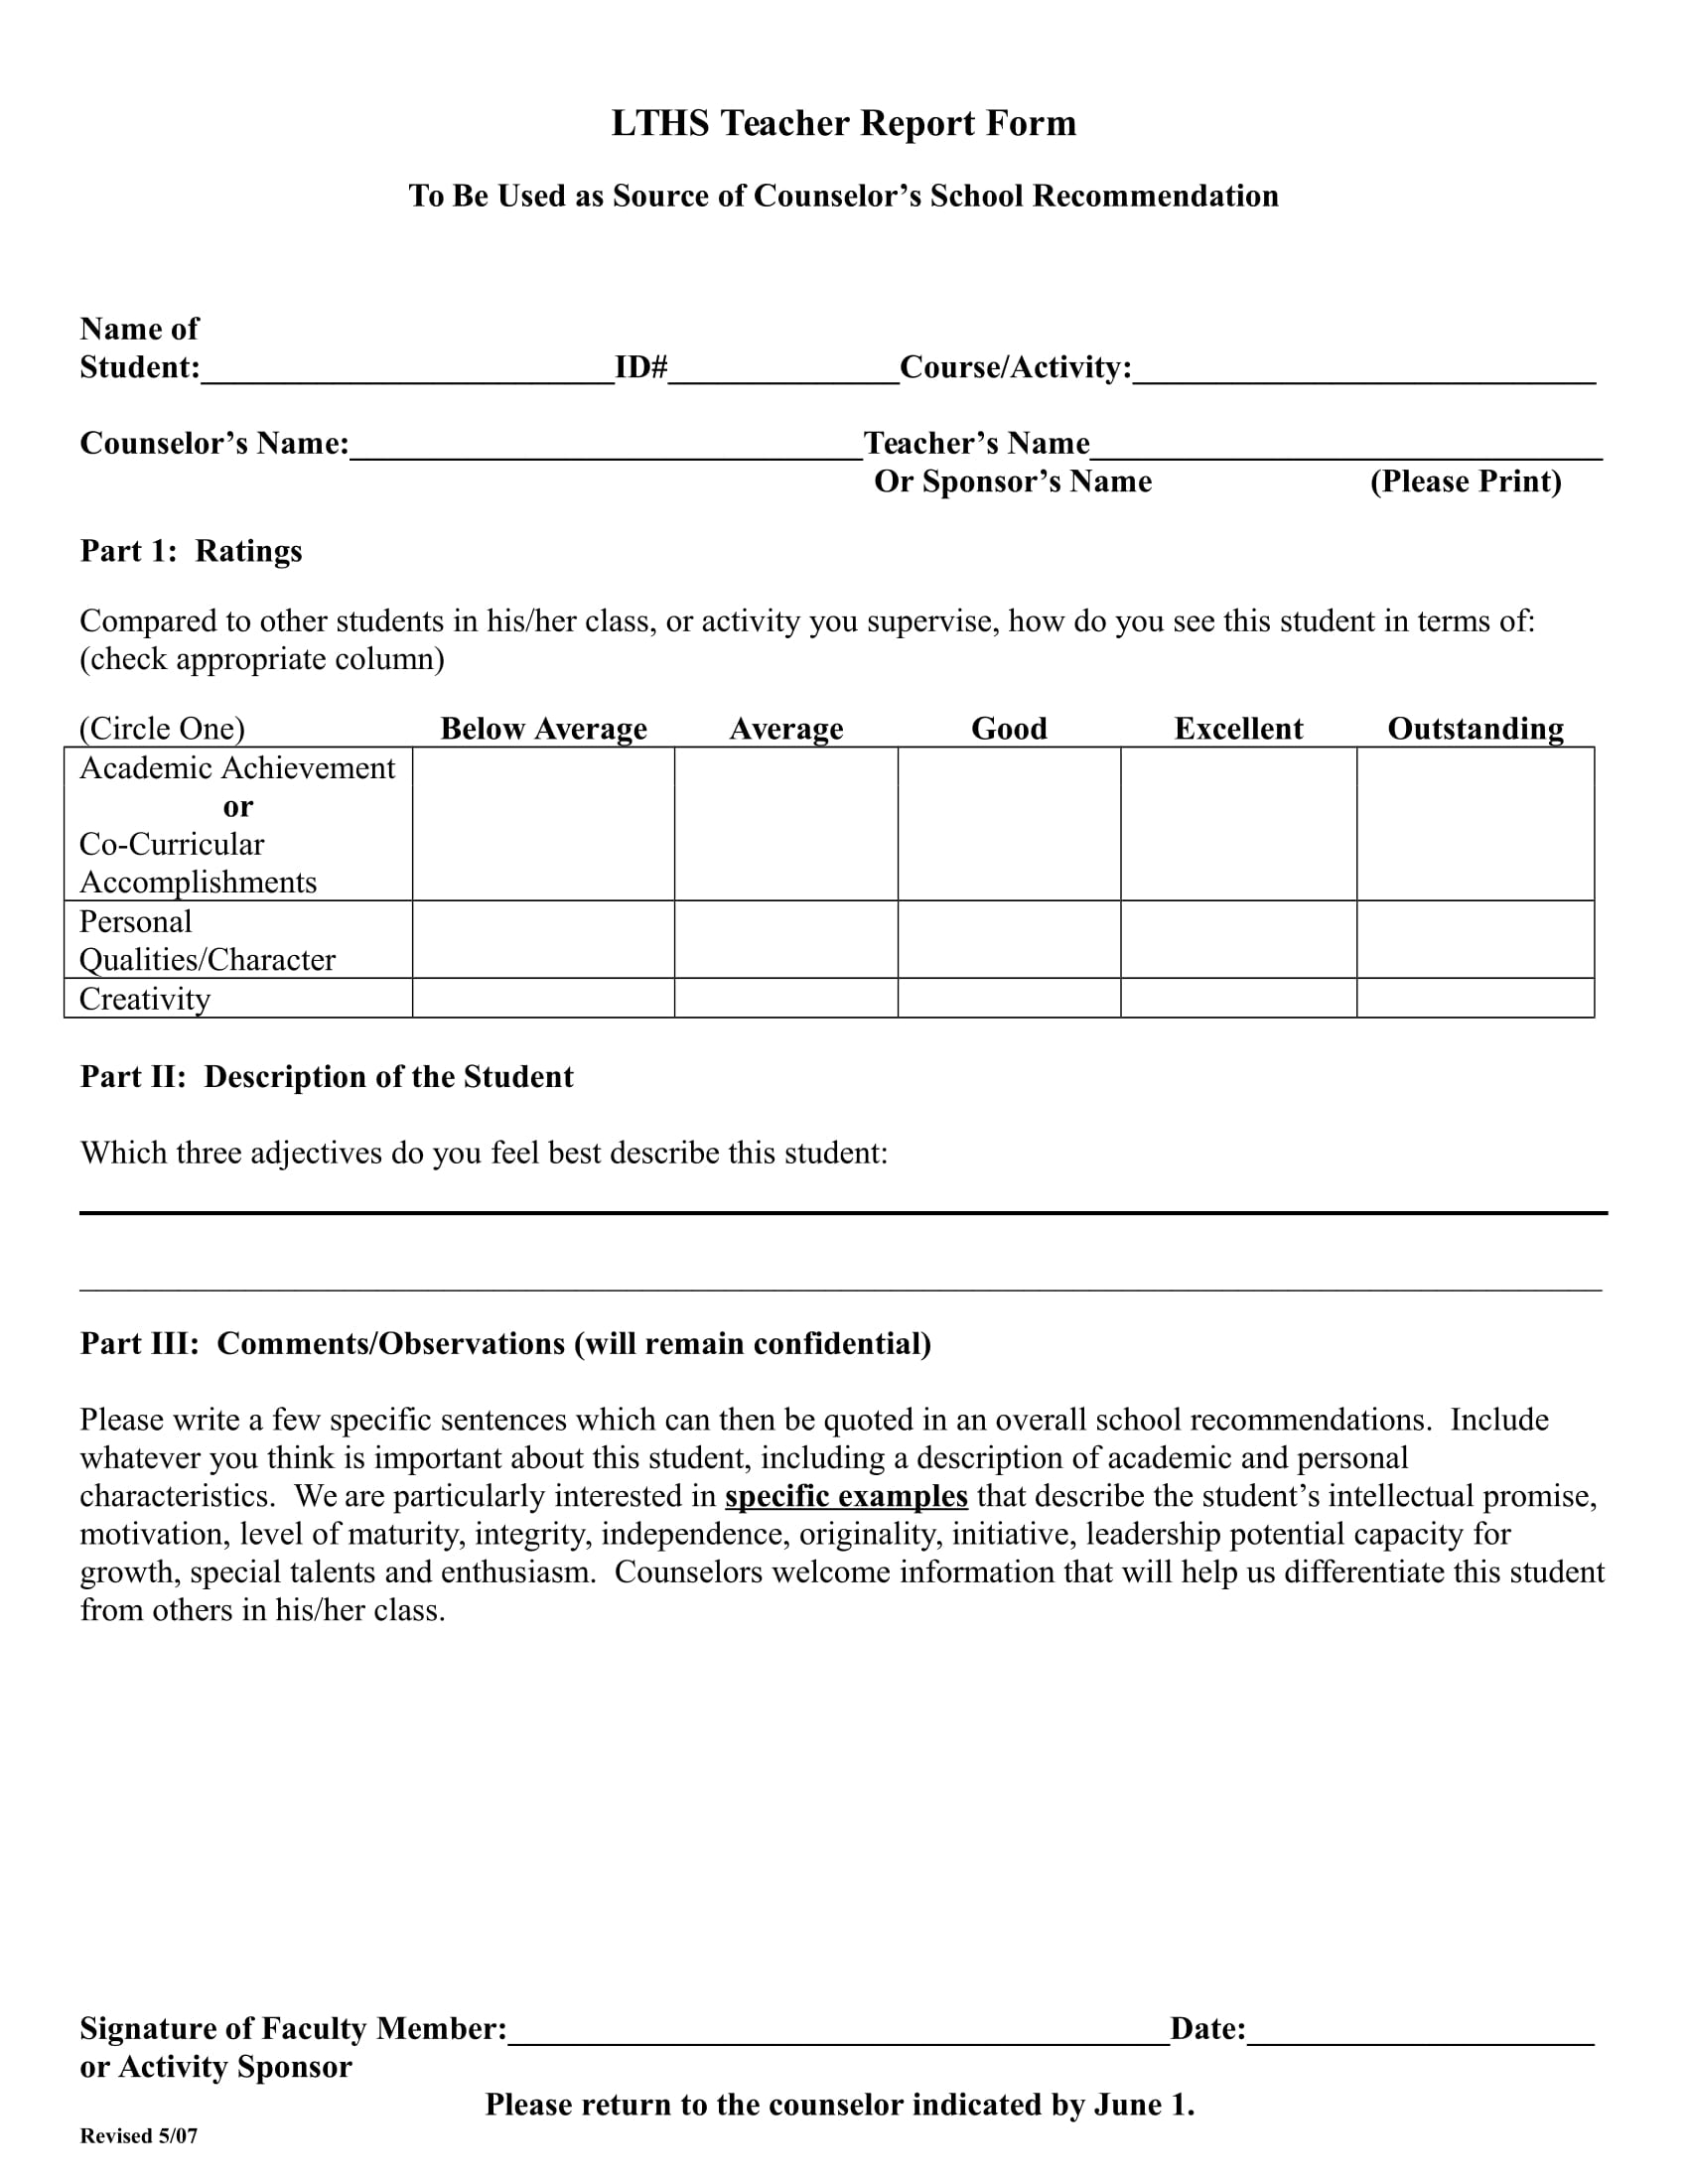 teacher report form for recommendation 1